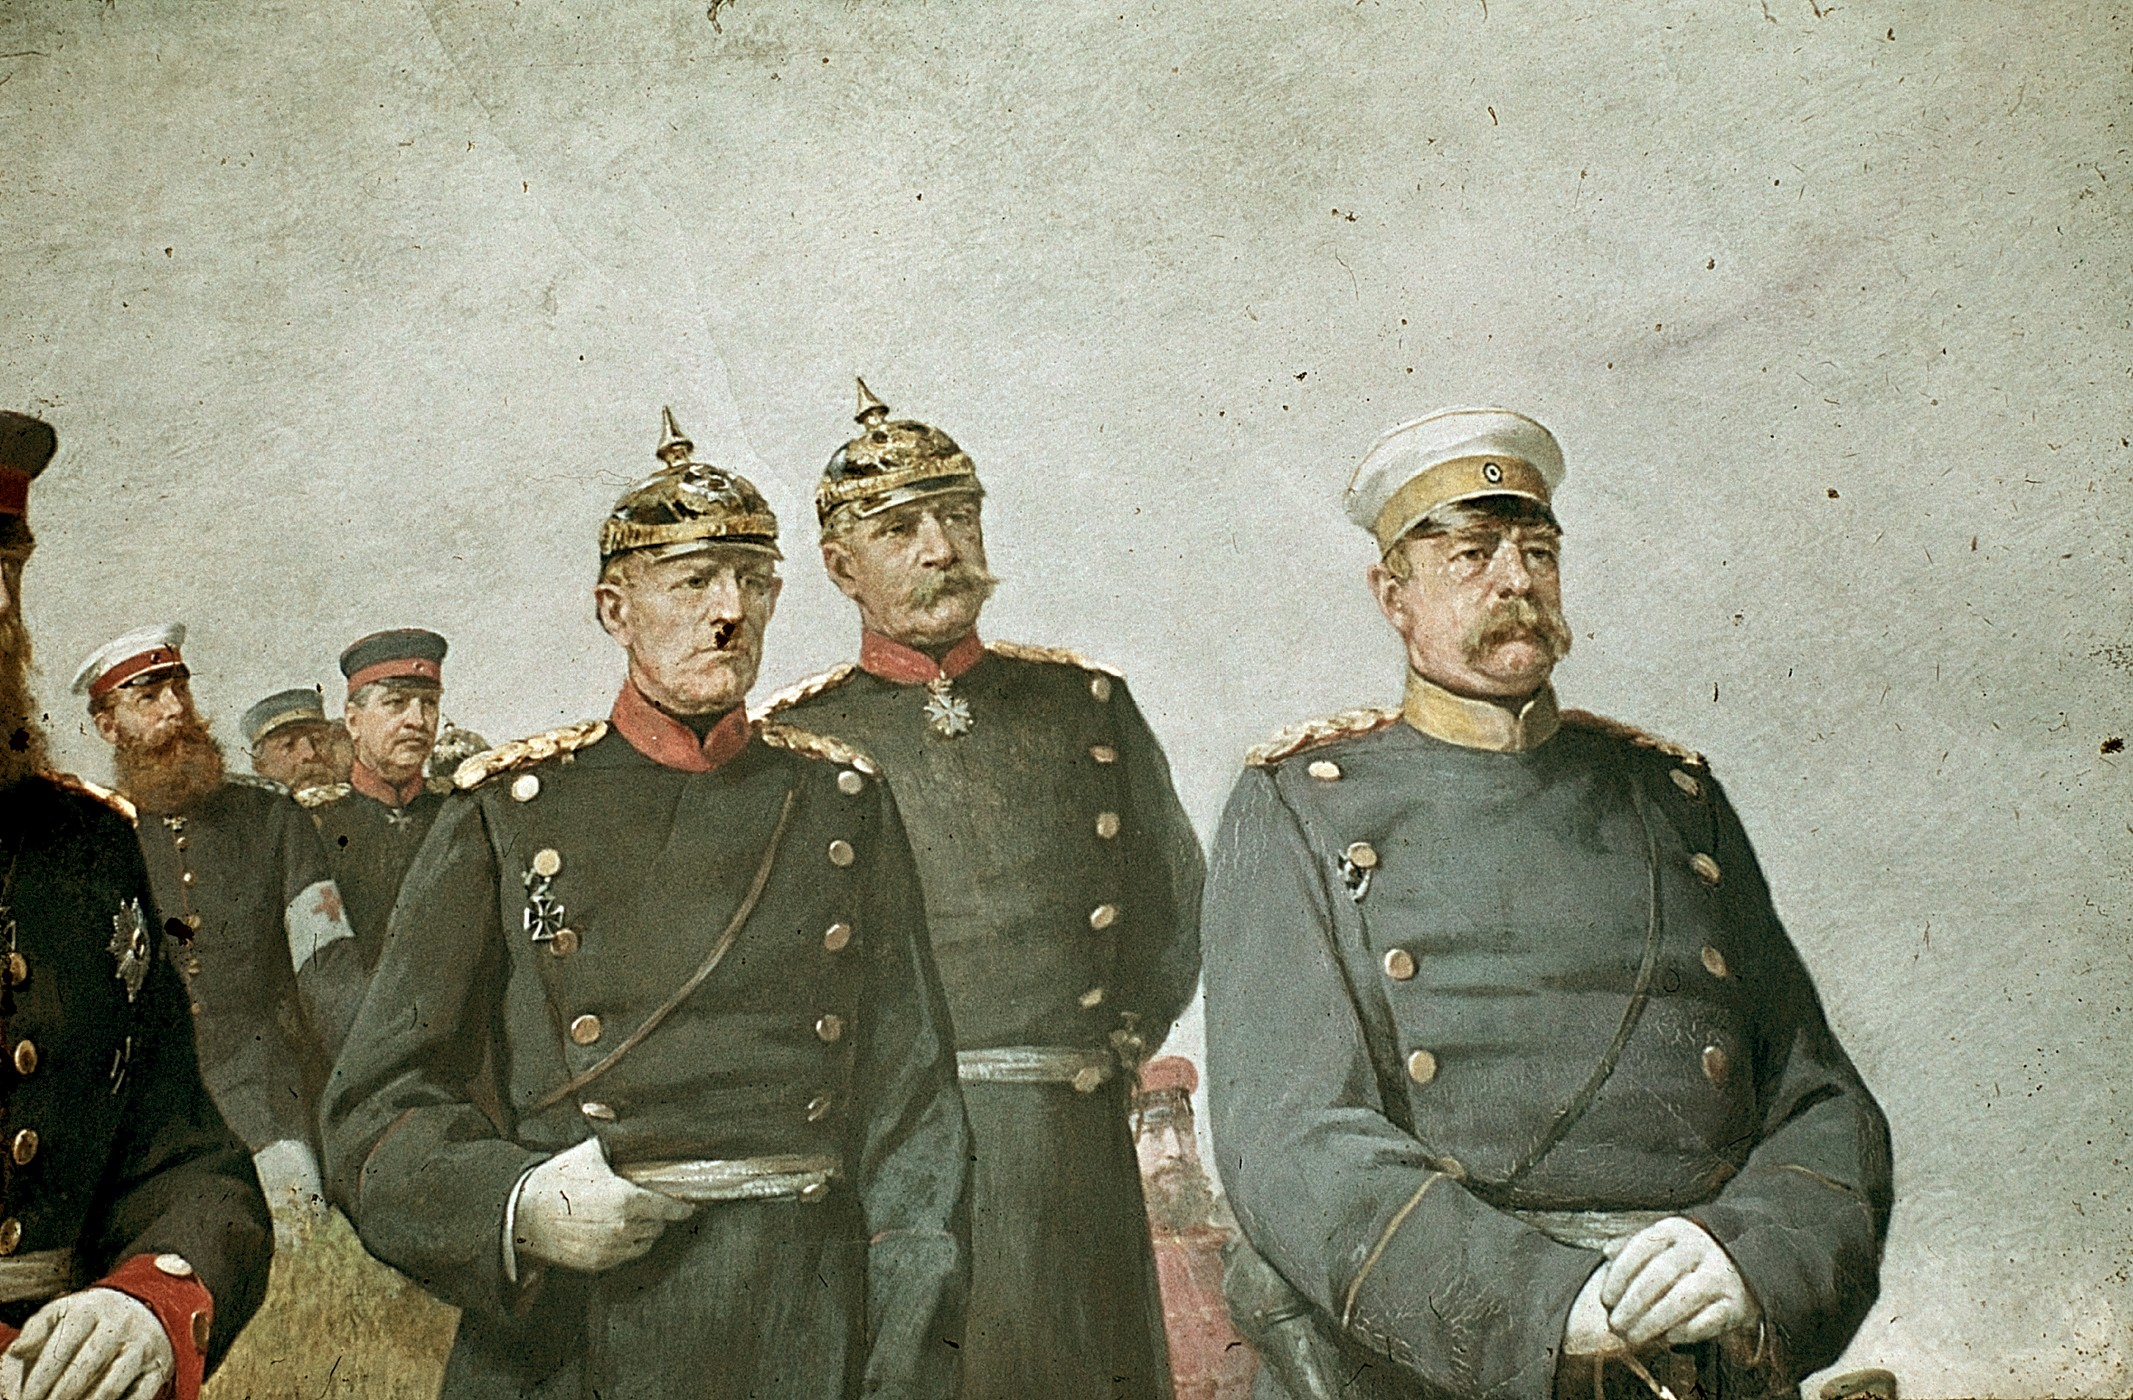 Militarism Wikipedia - If celebrities were 19th century military generals they would look like this